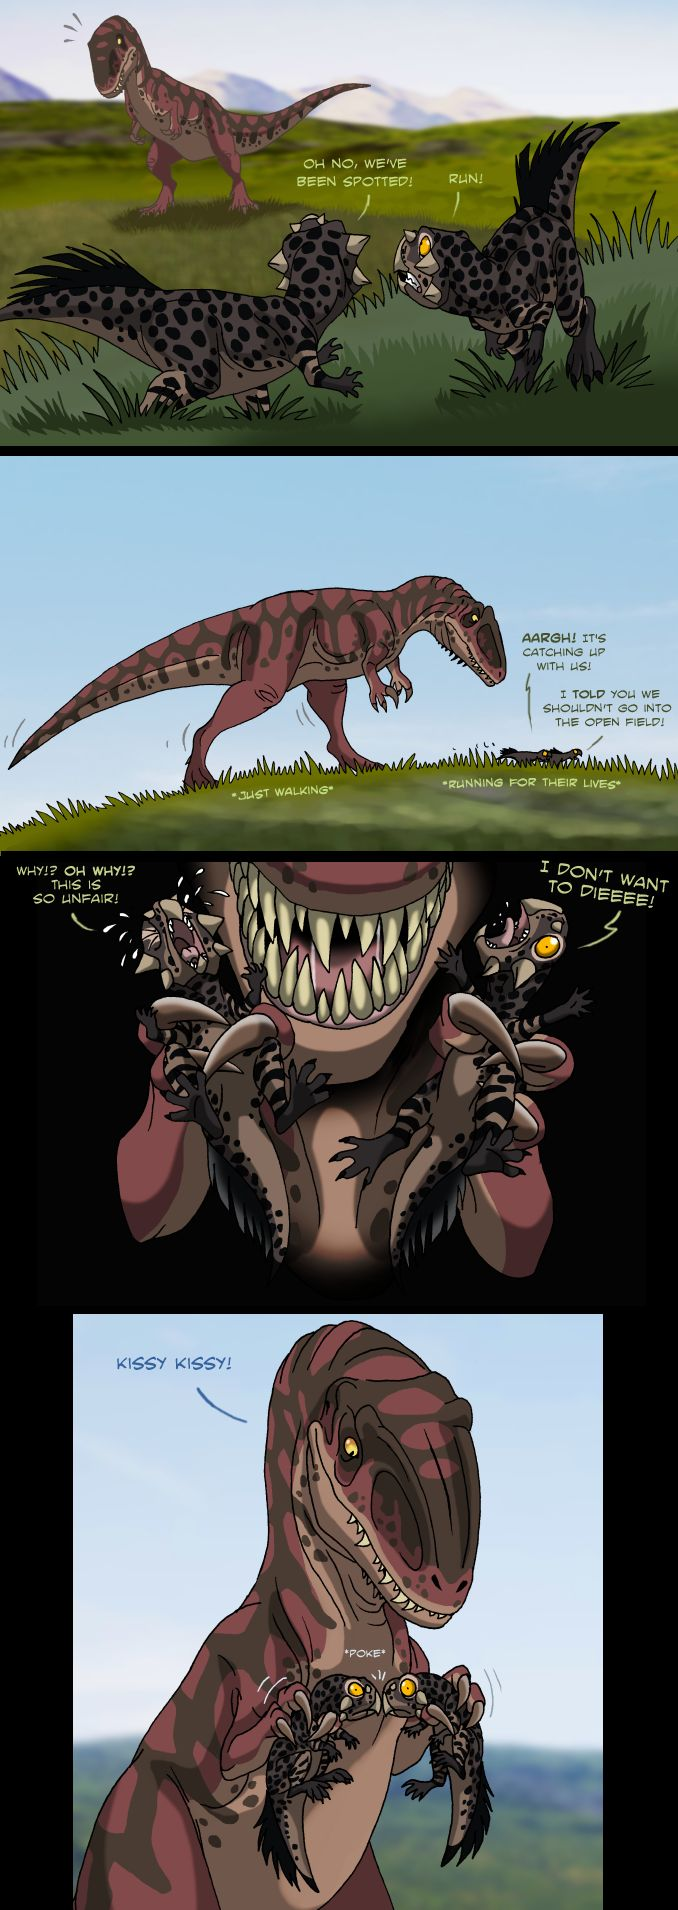 Jurassic park card 3 by chicagocubsfan24 on deviantart - The Isle Lowest Tier By Isismasshiro